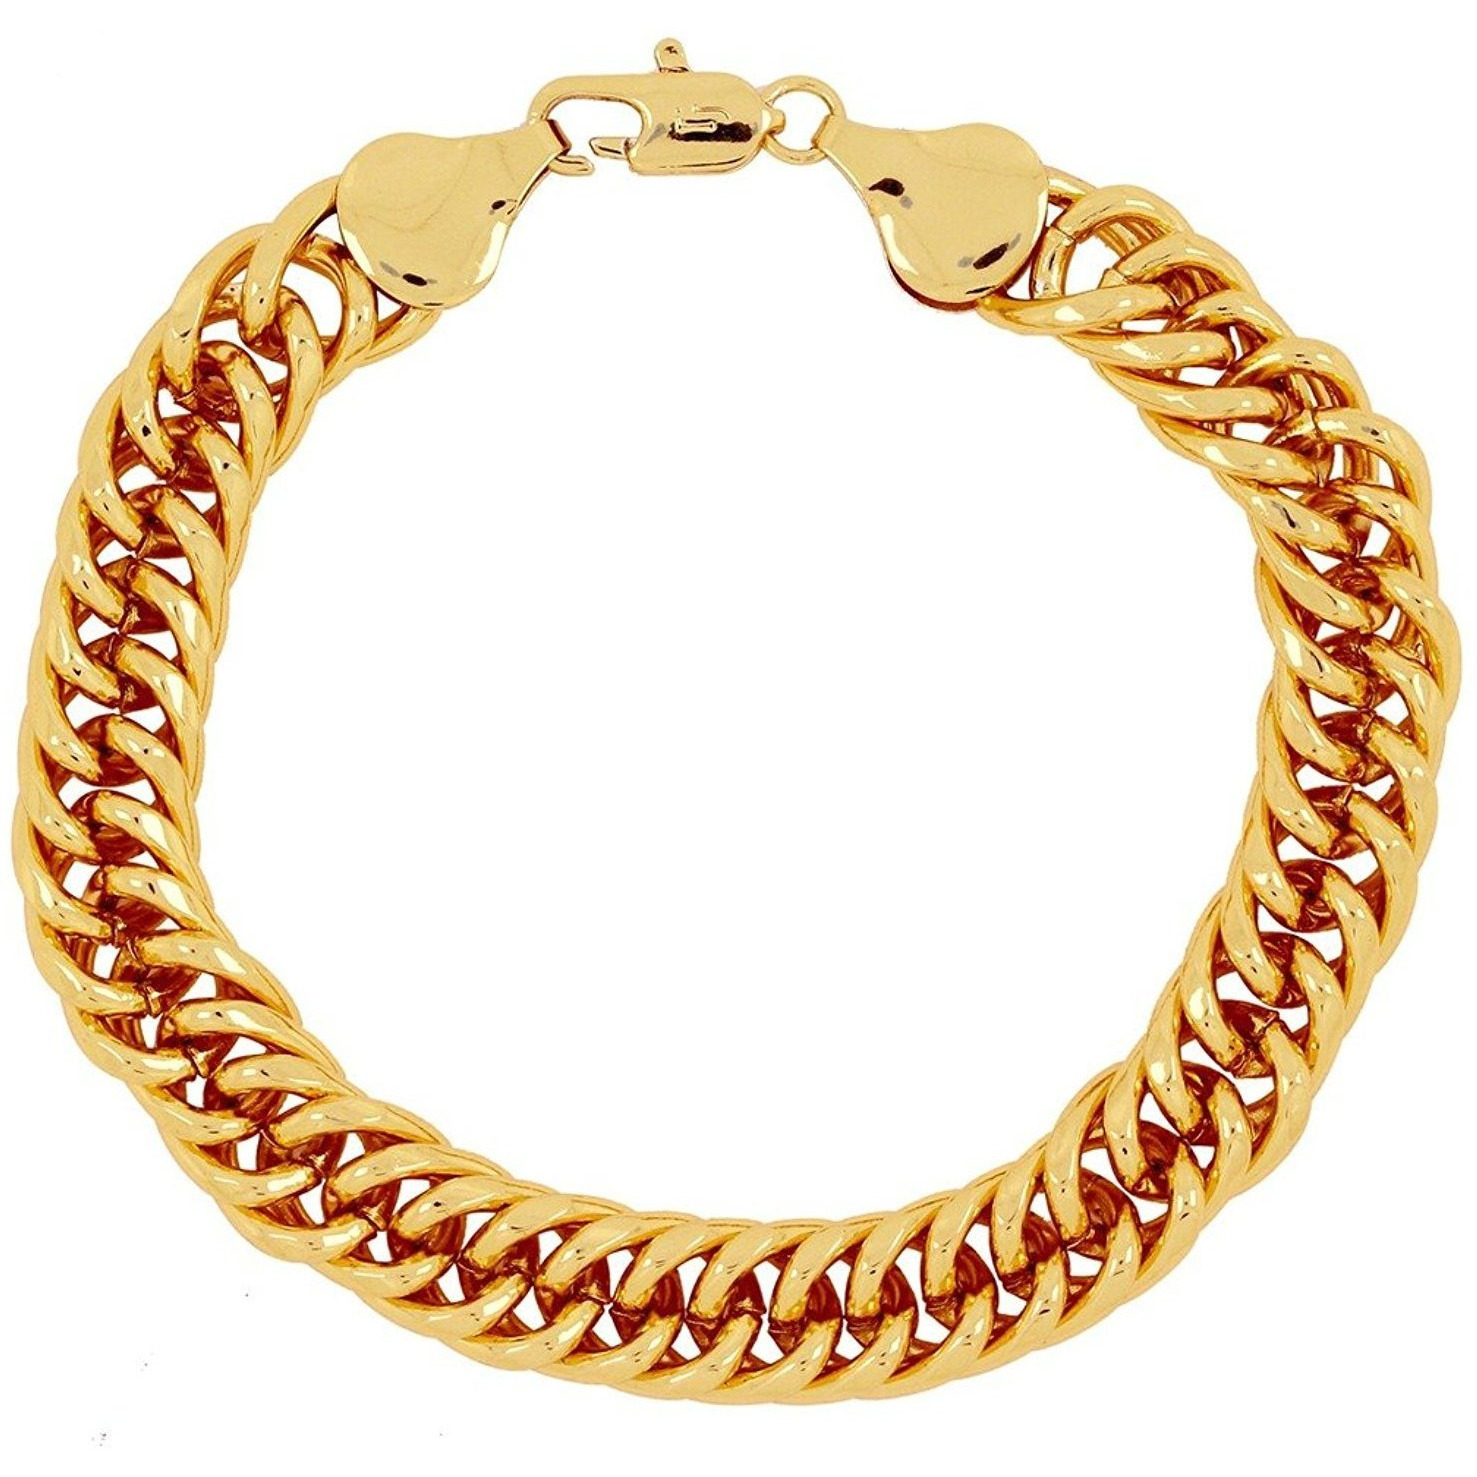 mens men link plated goldplated free today palmbeach s overstock accent yellow gold curb diamond product shipping jewelry watches bracelet